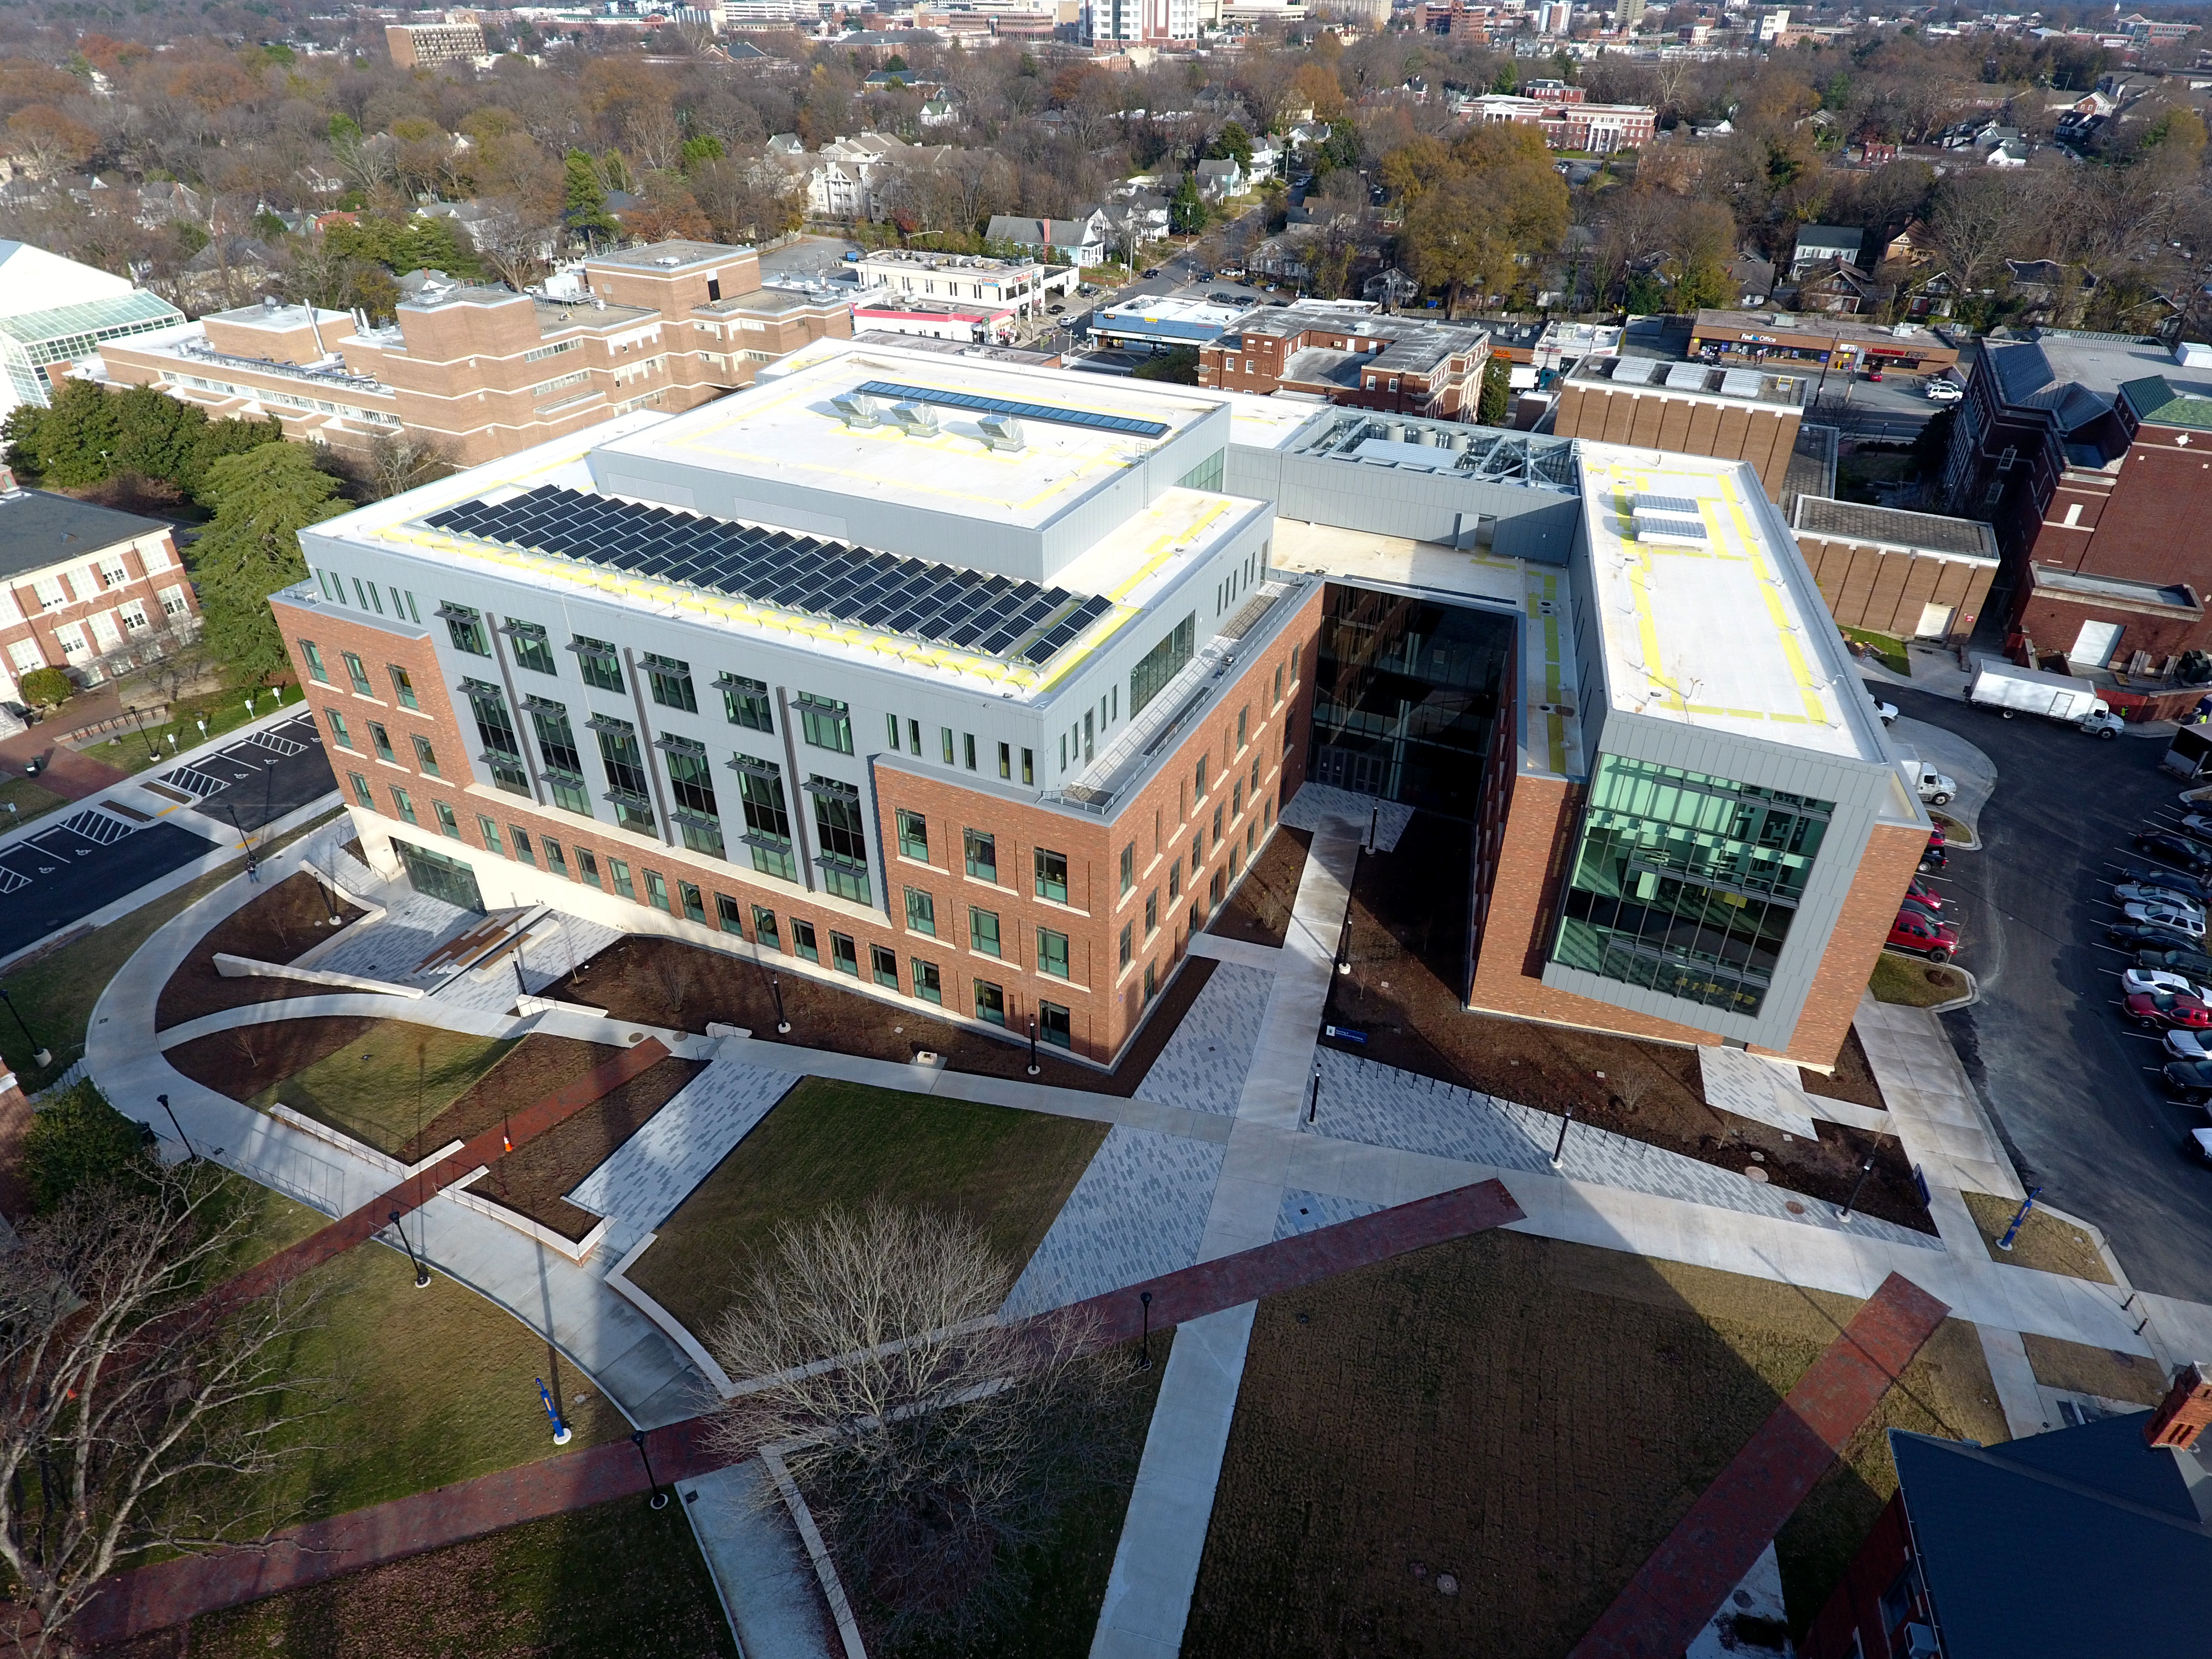 Aerial view of the Greensboro instructional building.